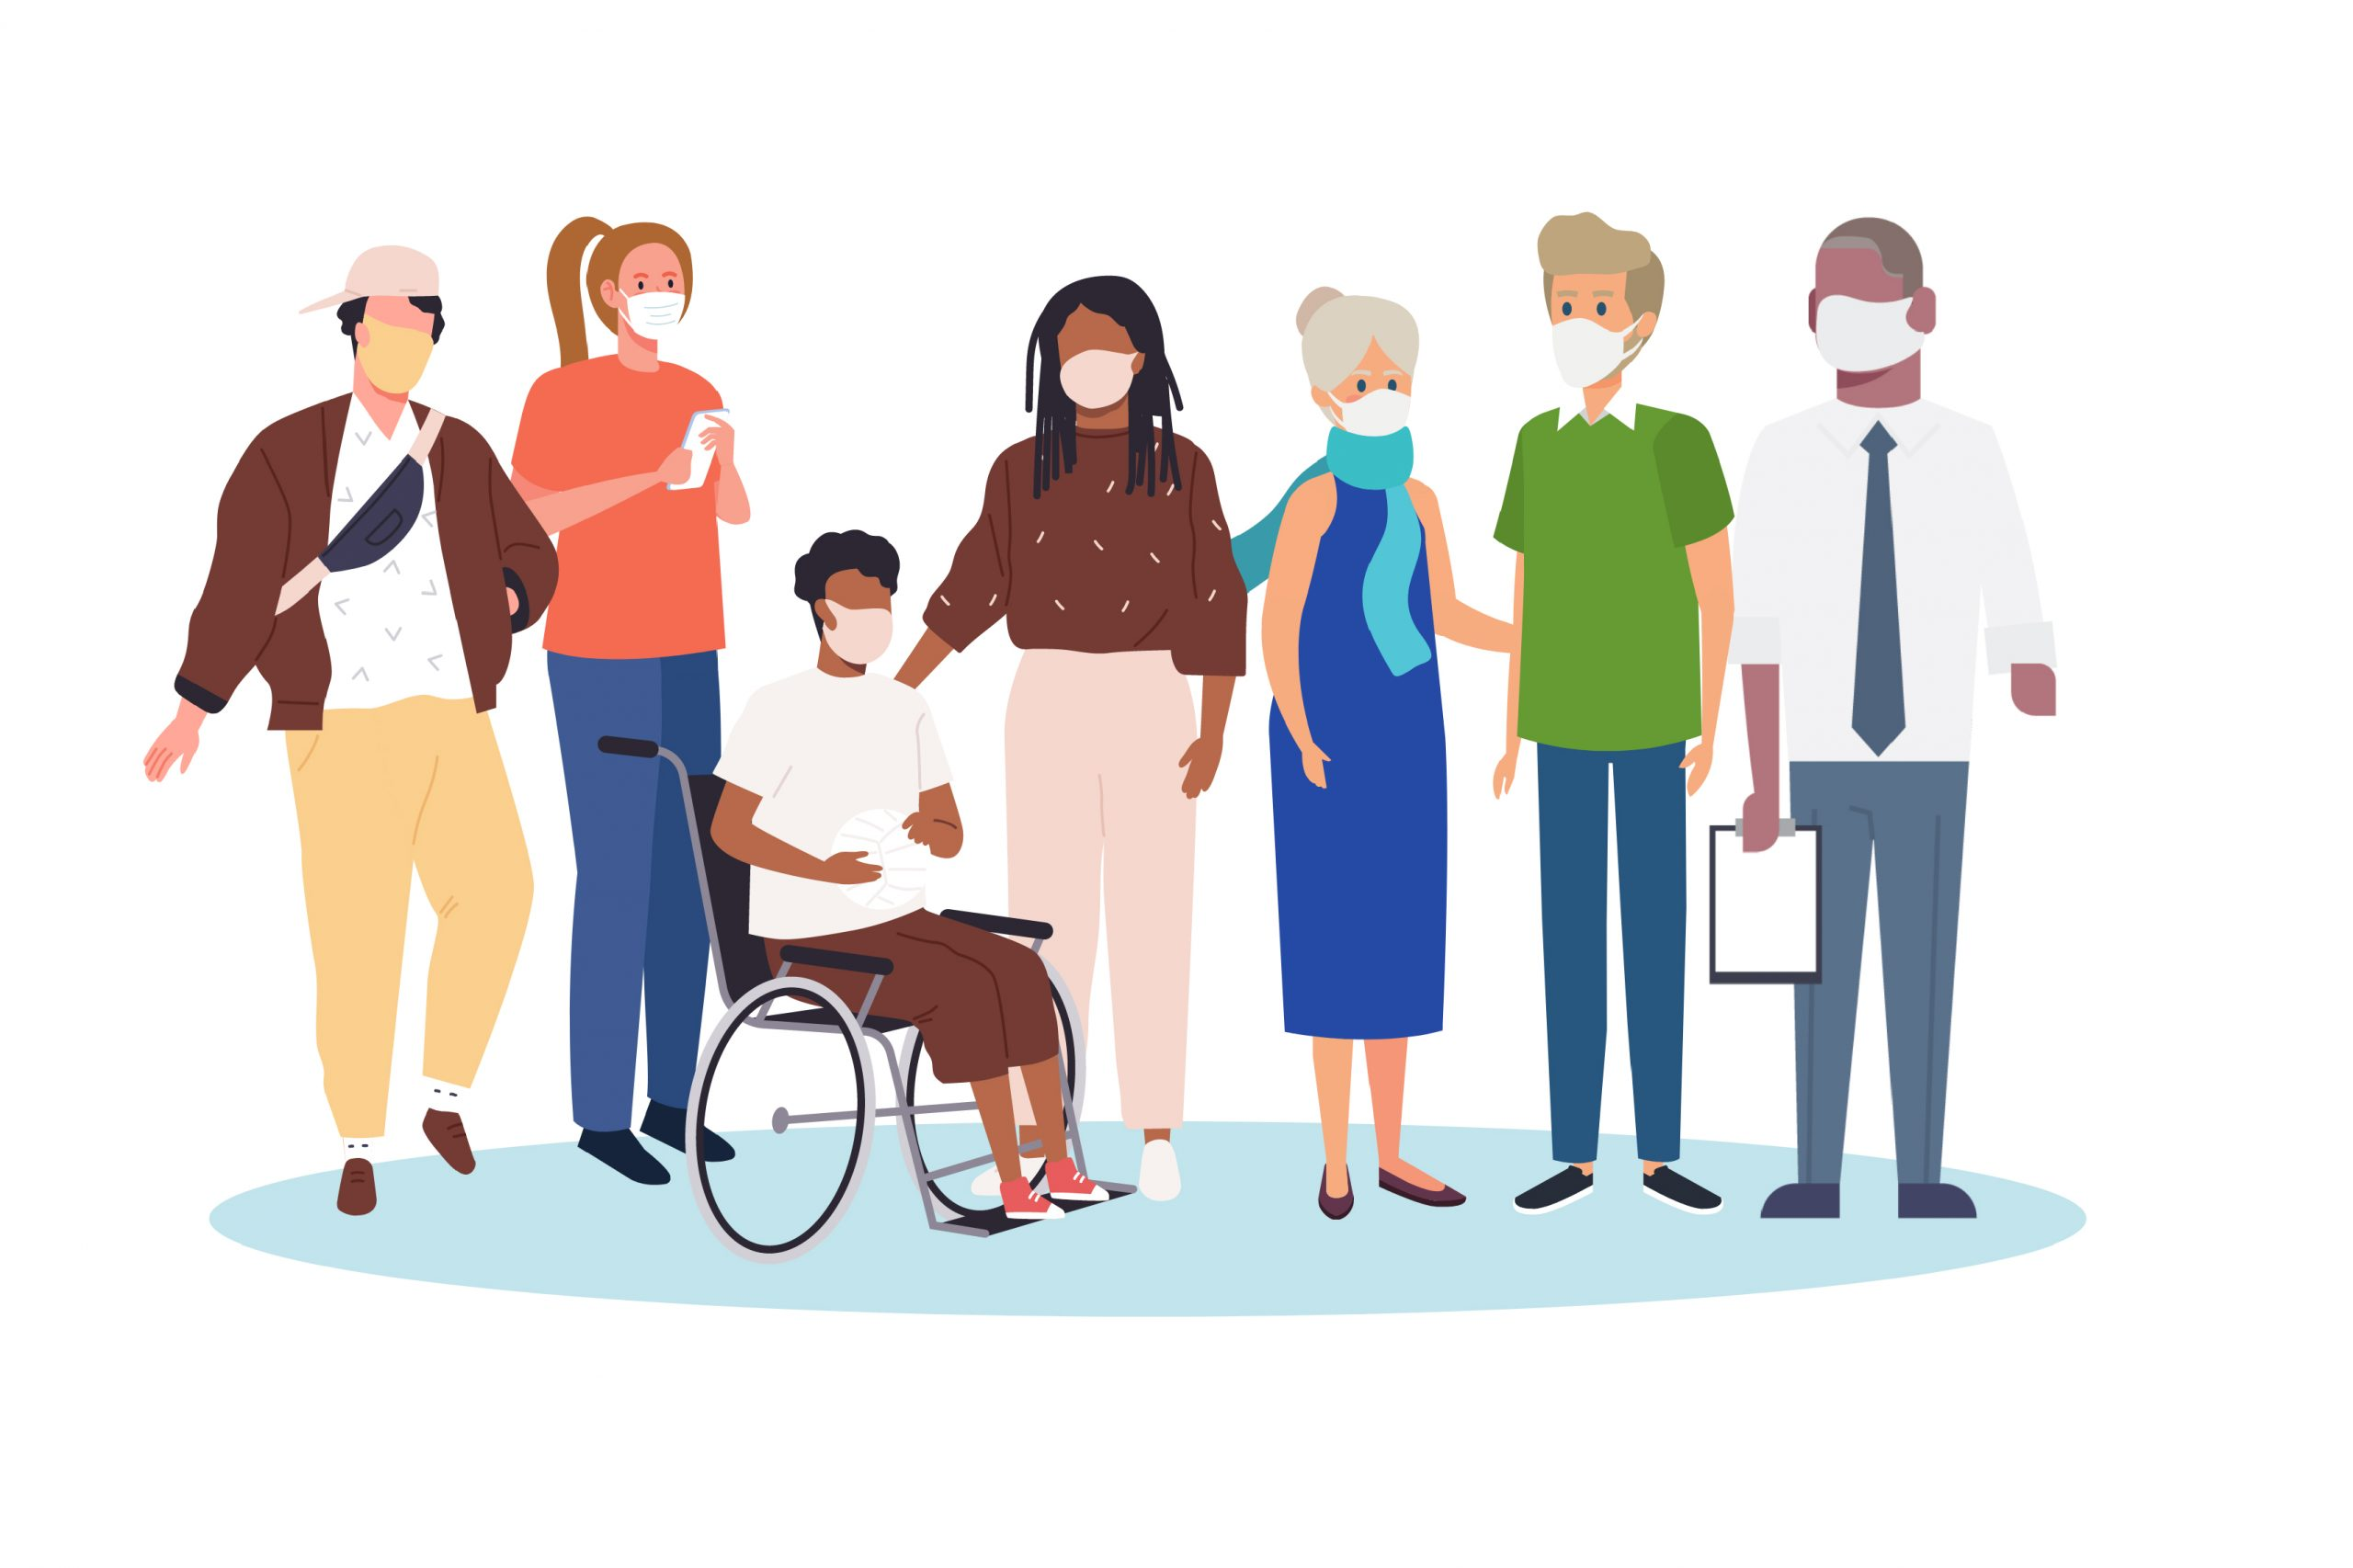 Illustrative graphic of a diverse group of people indicating that all are eligible for a free vaccine if 16+